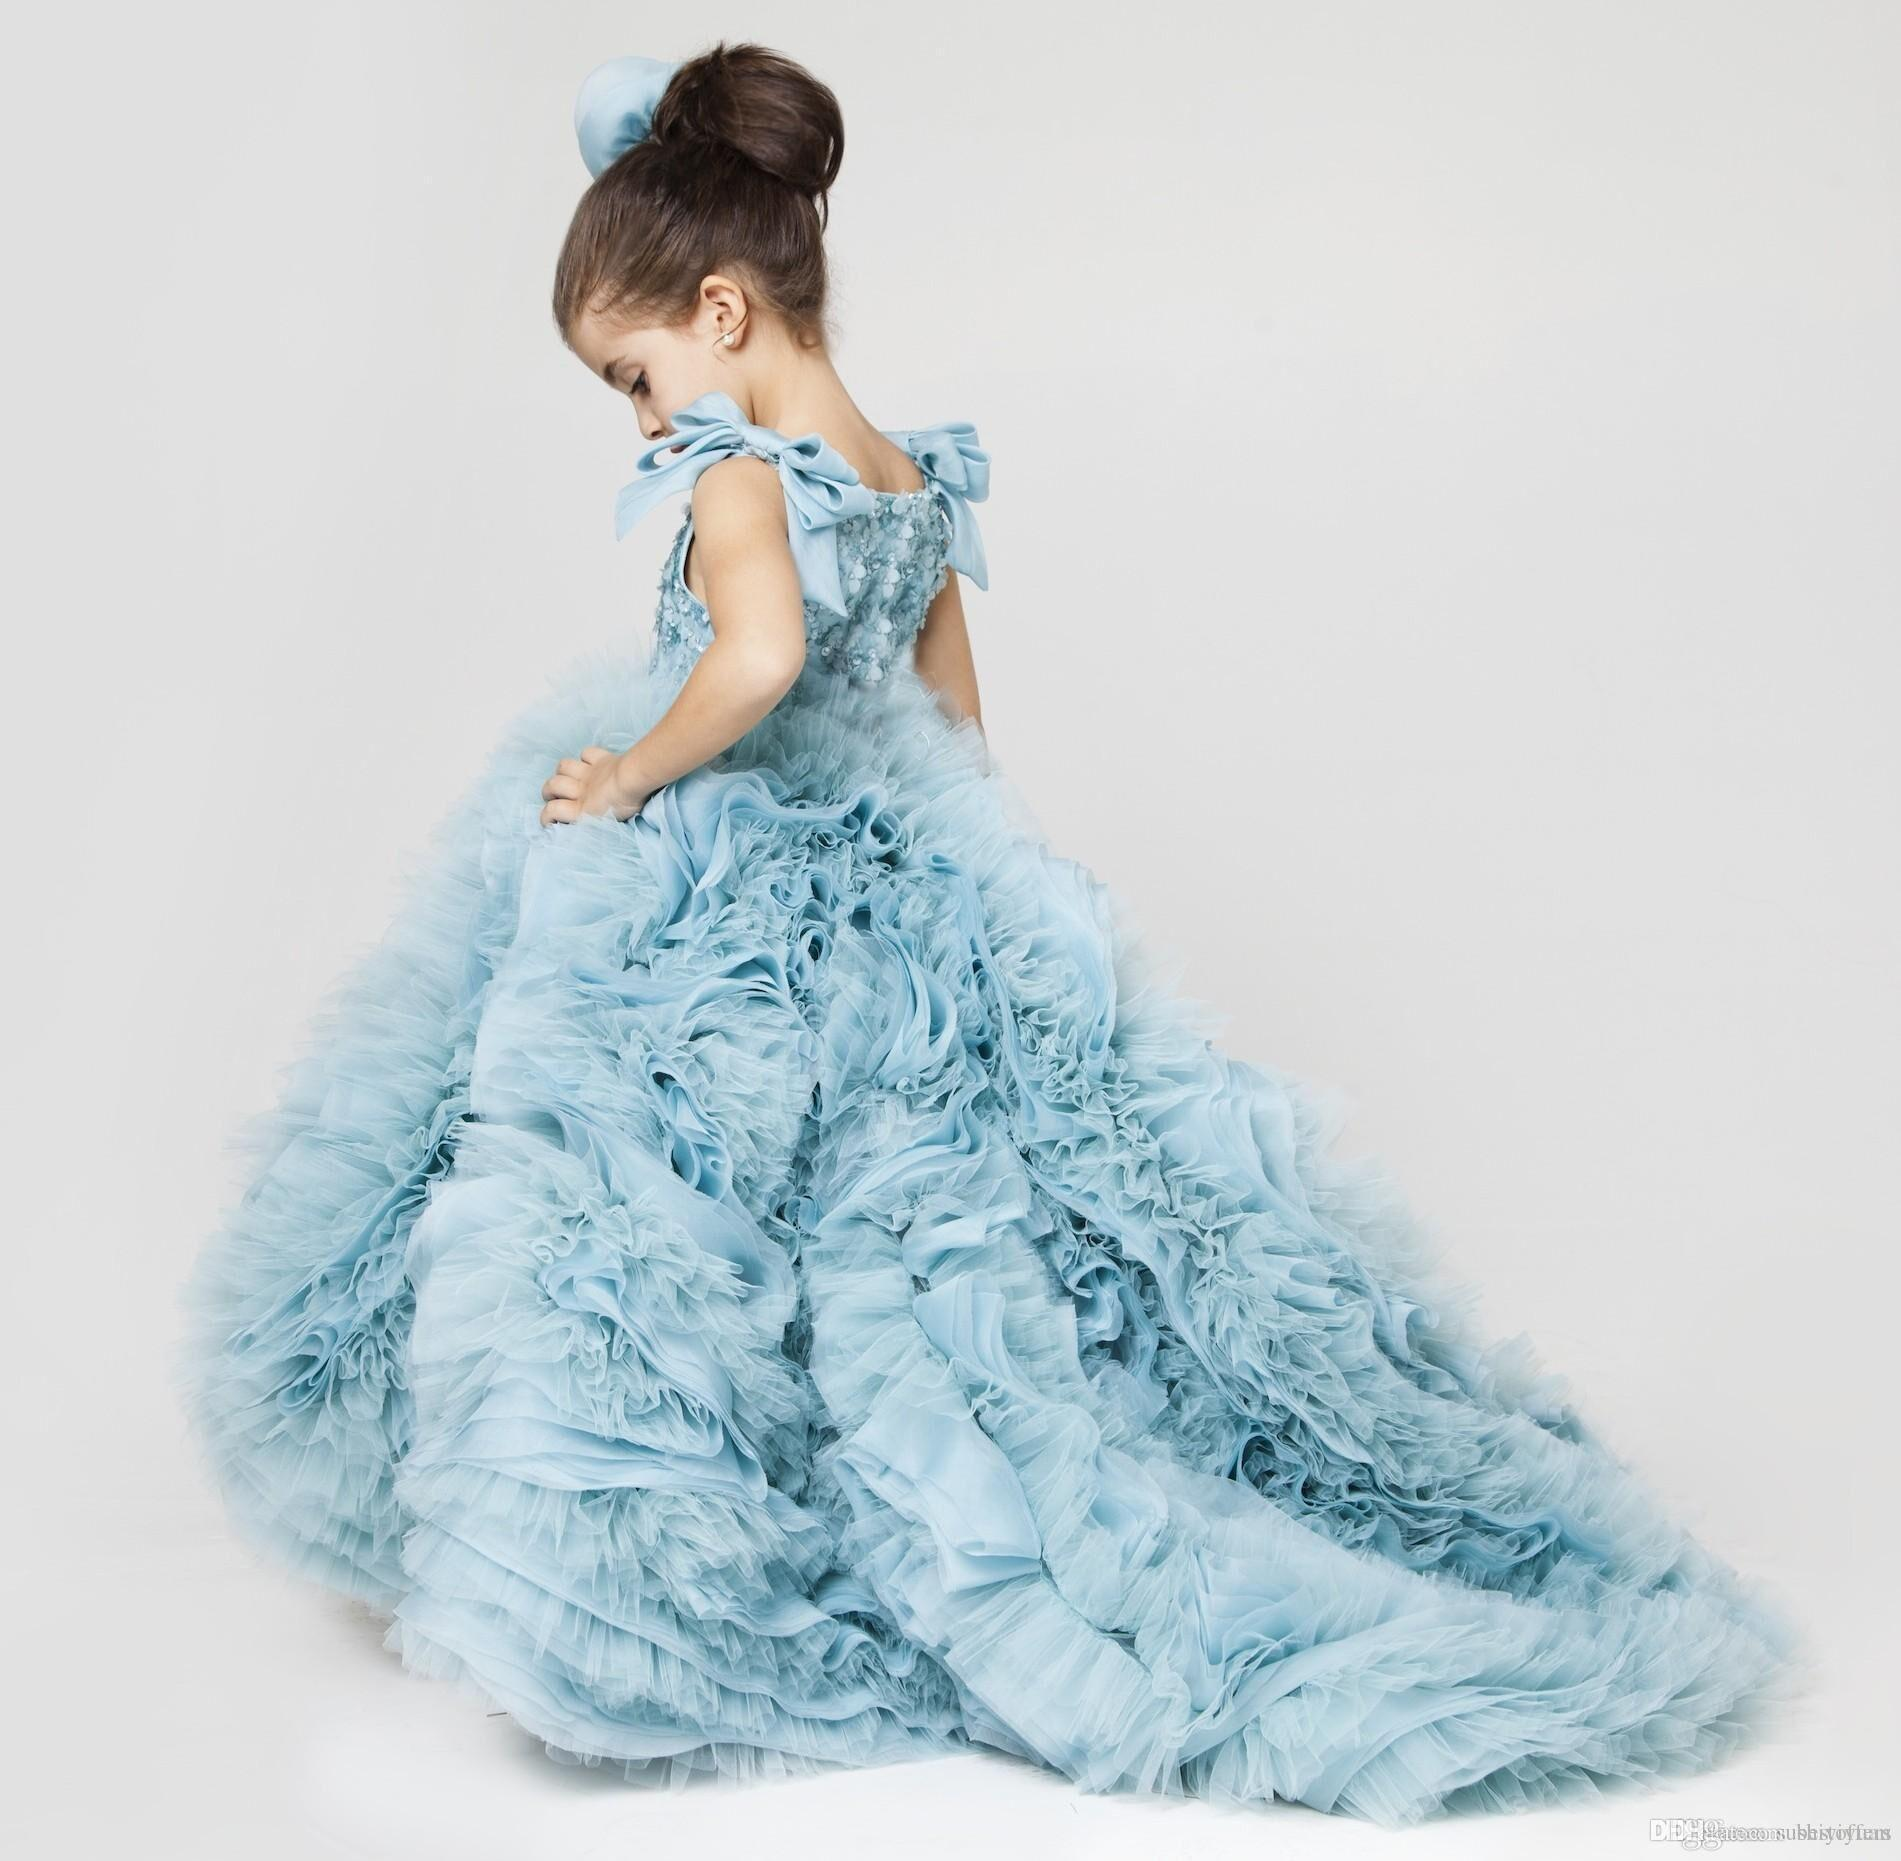 Winter Wonderland Wedding Blue Dresses | Dress images